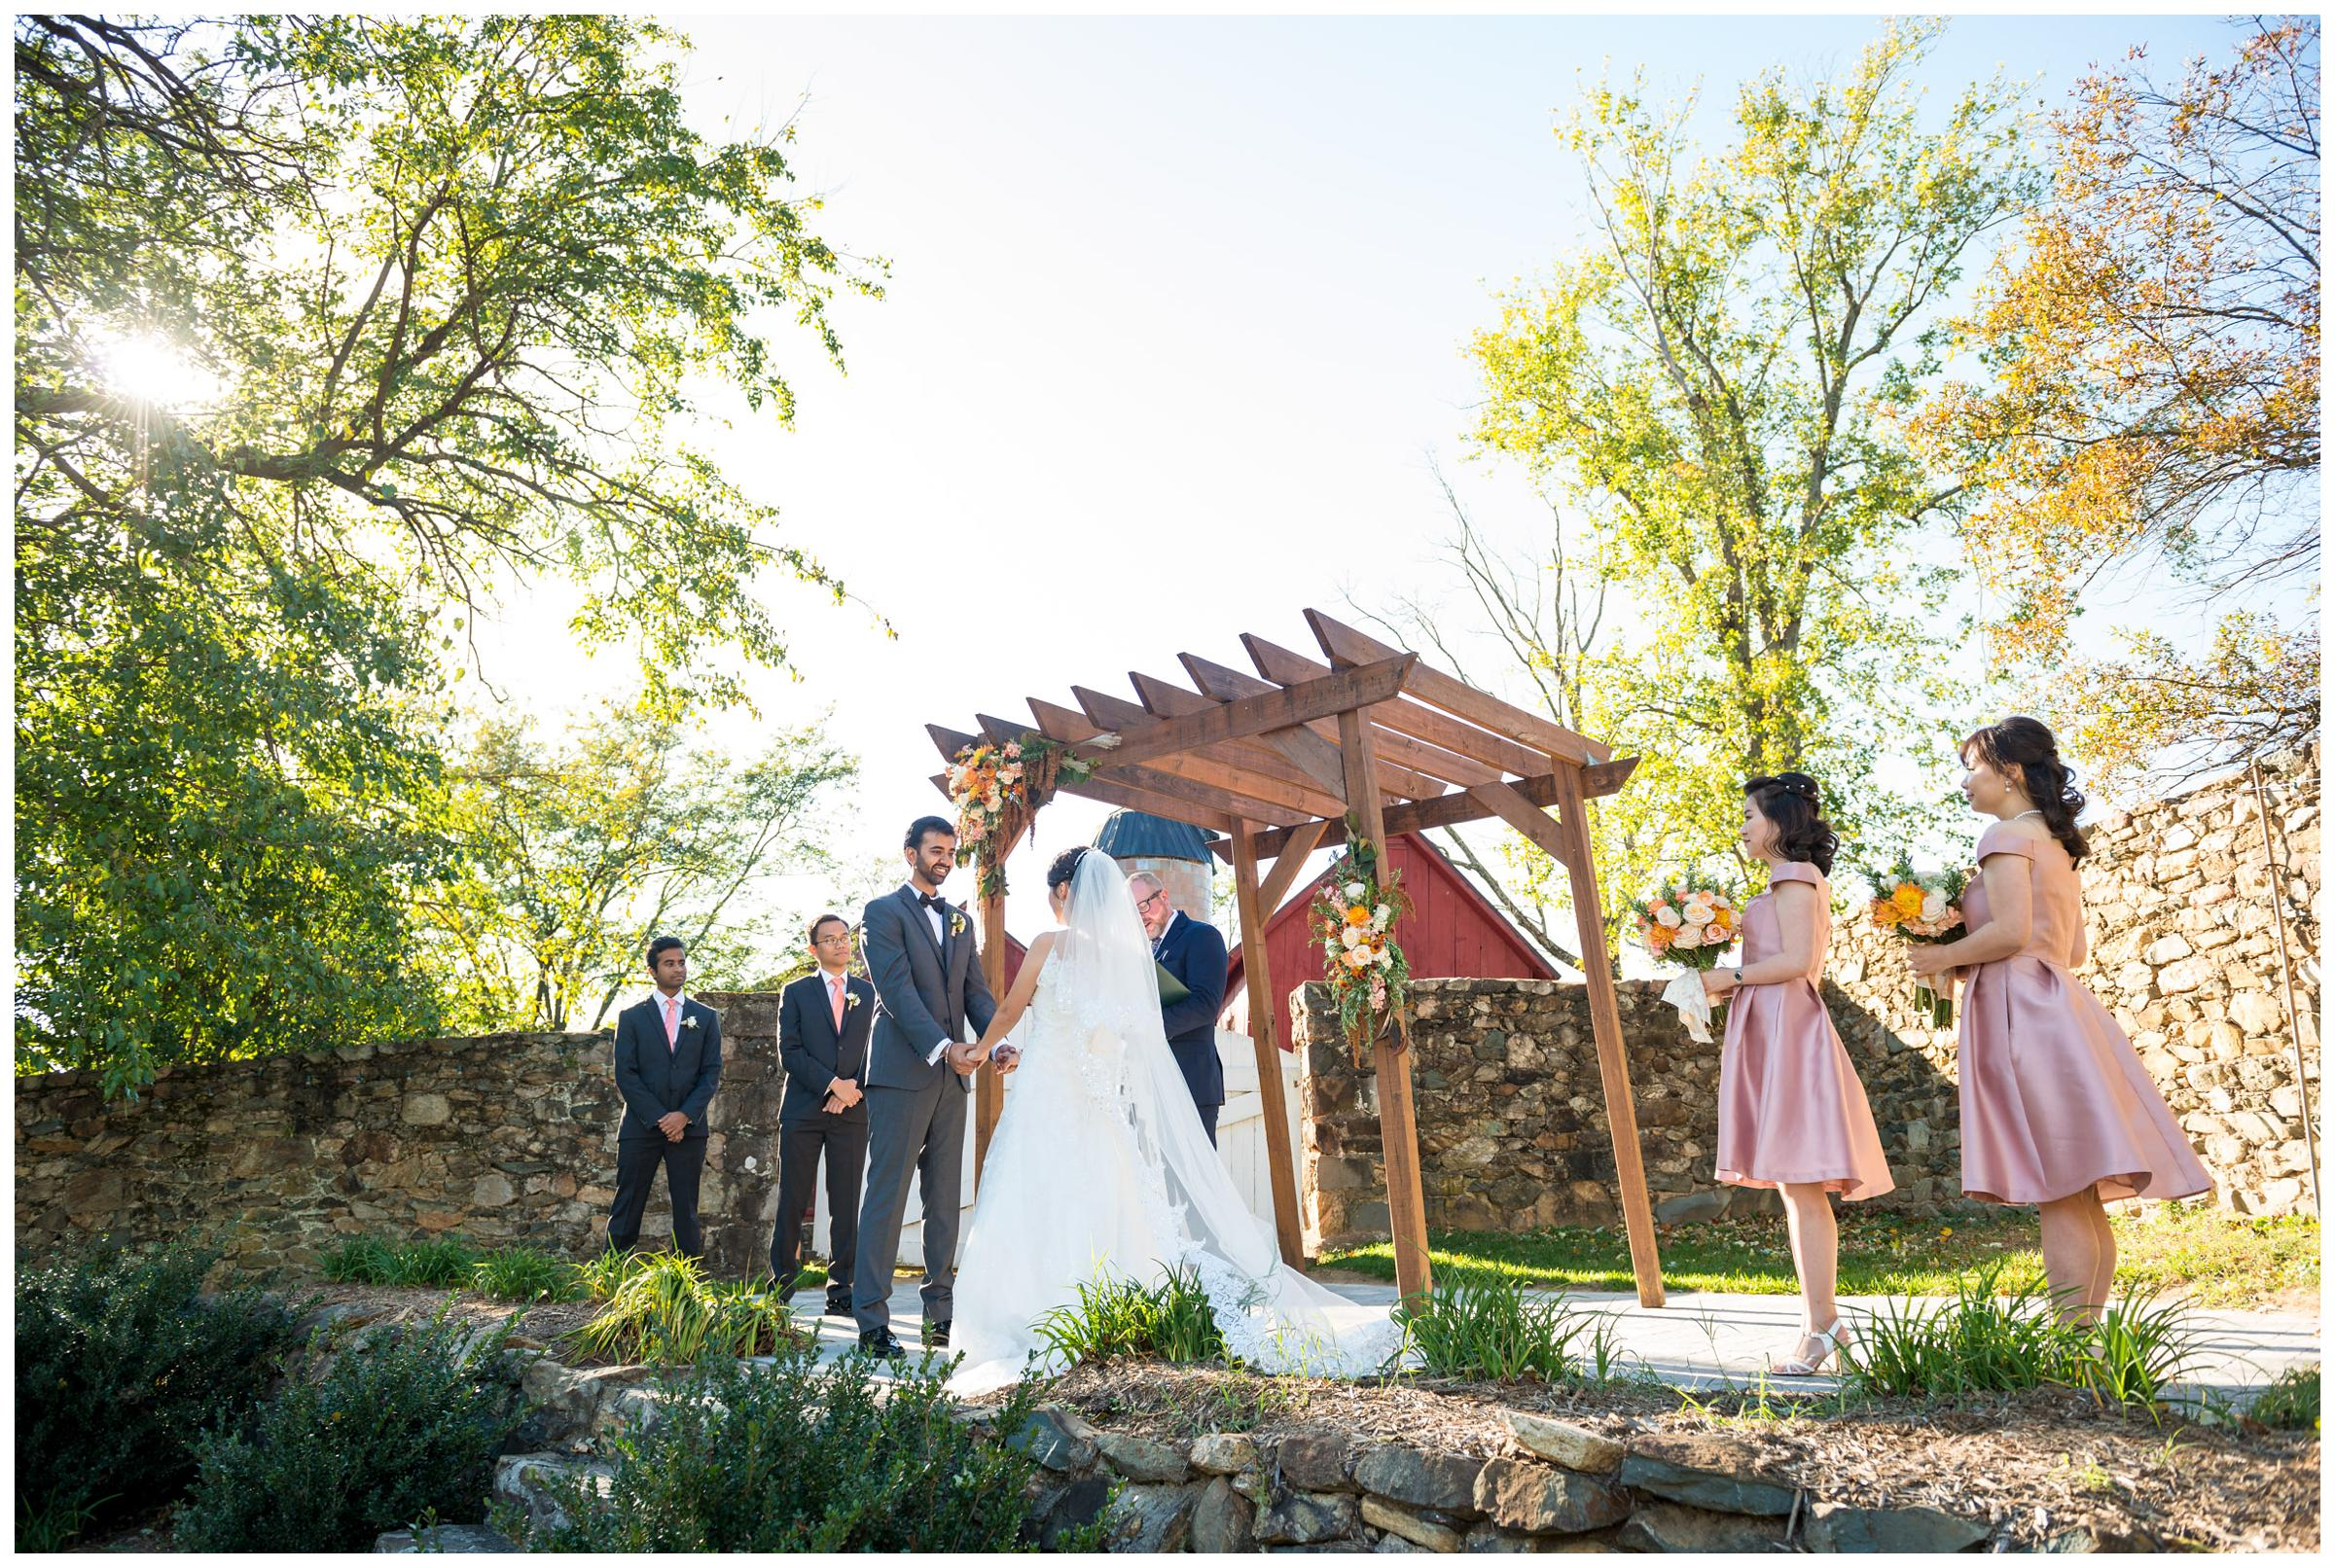 Bride and groom with bridal party during rustic fall wedding ceremony at Stoneleigh Golf Club in Virginia